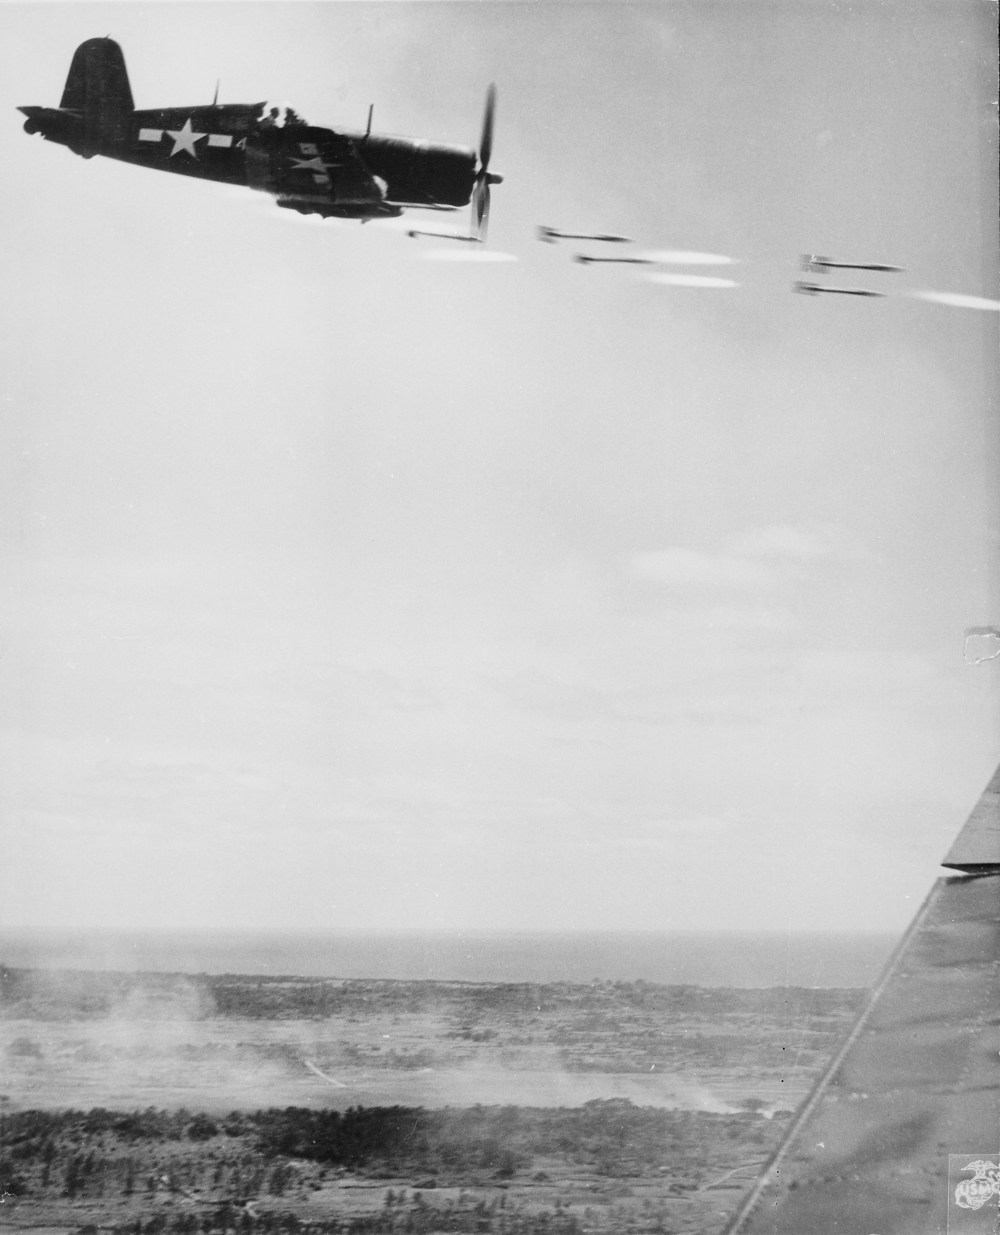 medium resolution of a corsair fires its rockets at a japanese stronghold on okinawa